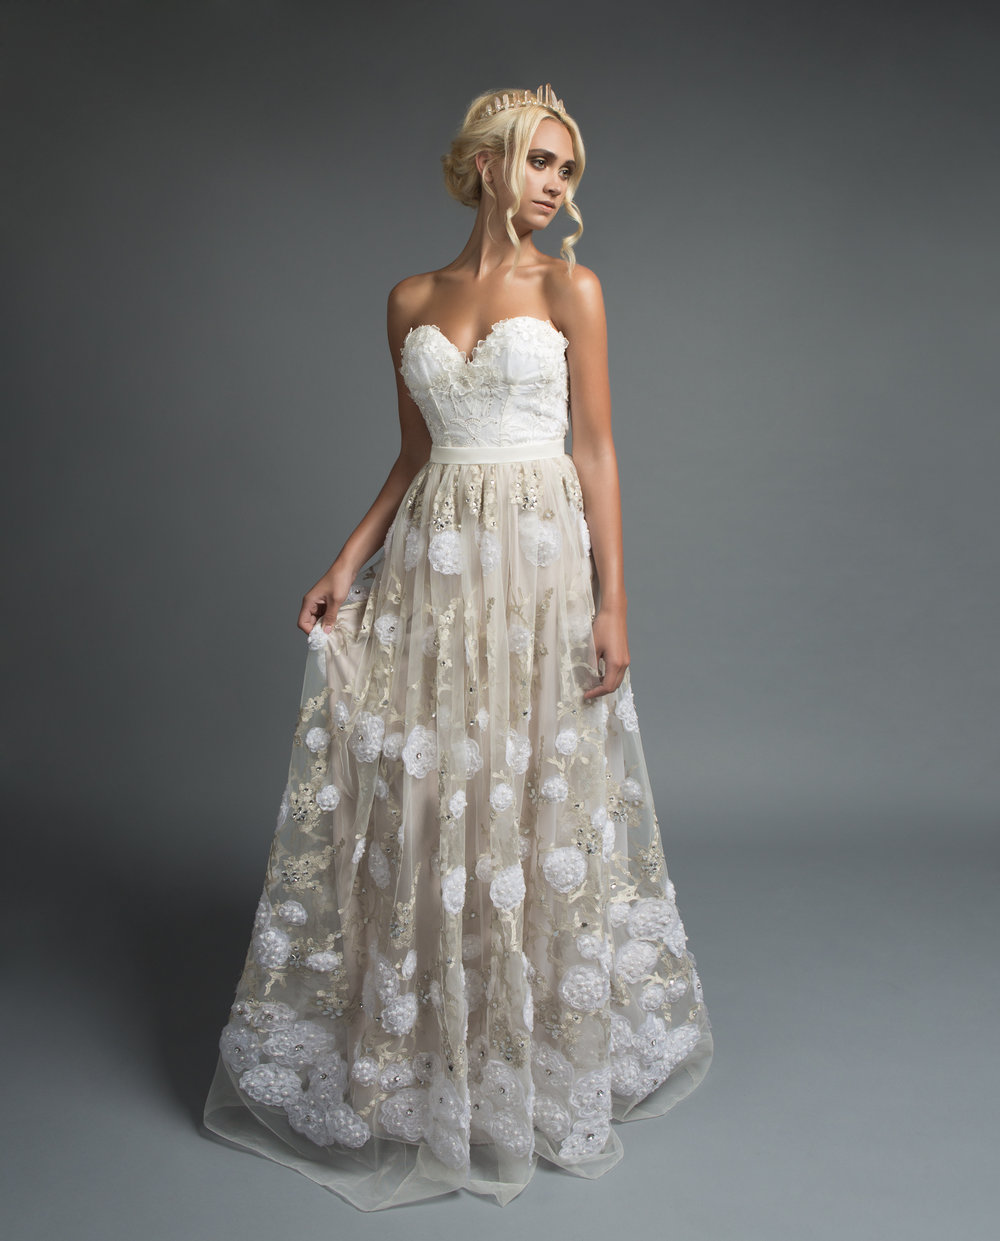 April bustier and Eden skirt from Victoria Spector Bridal Couture and Amelia Rose Quartz crown from Kata Banko Couture